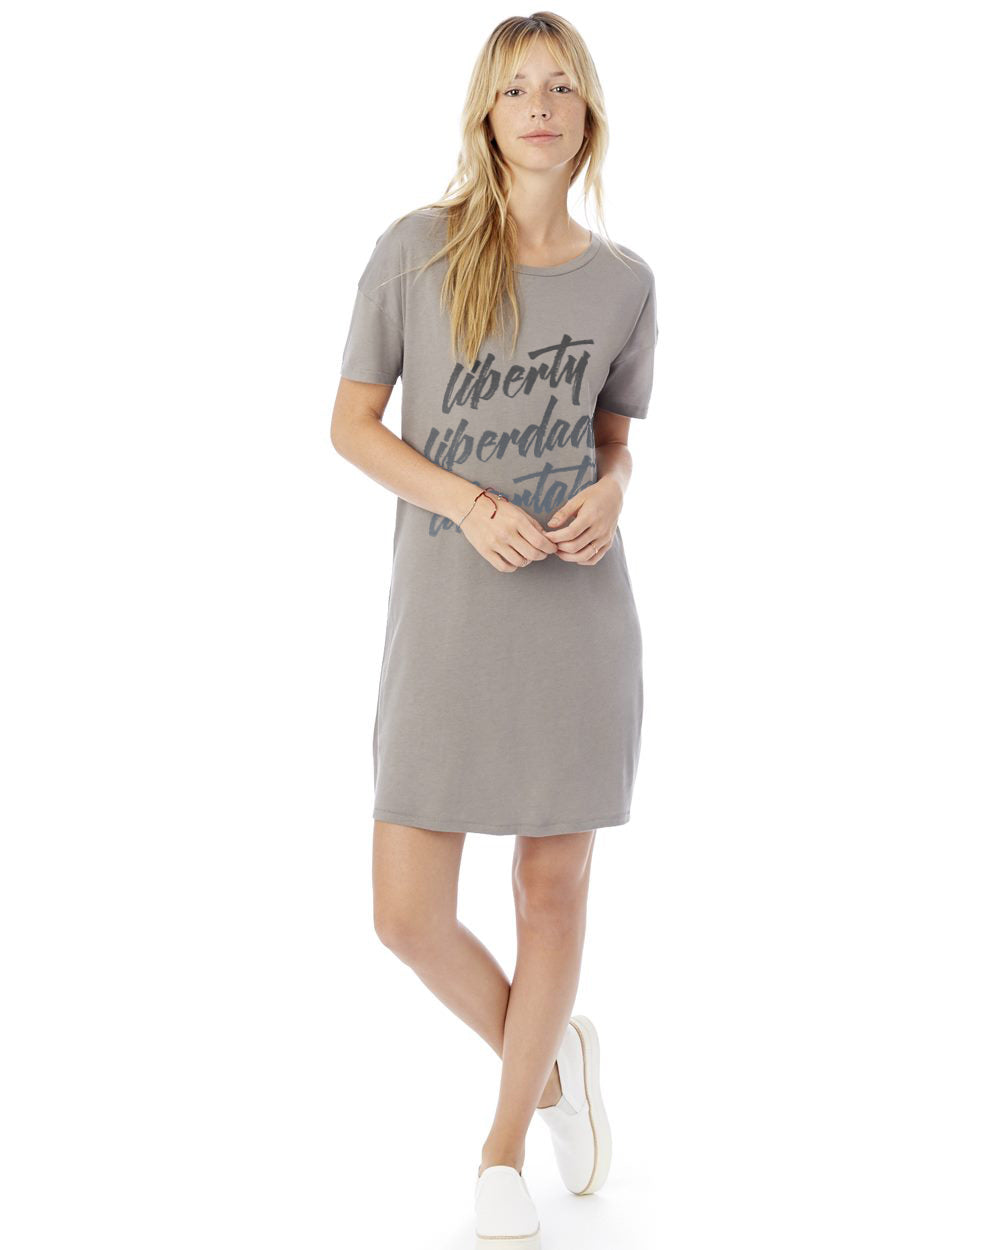 Liberty Women's Cotton Modal T-Shirt Dress